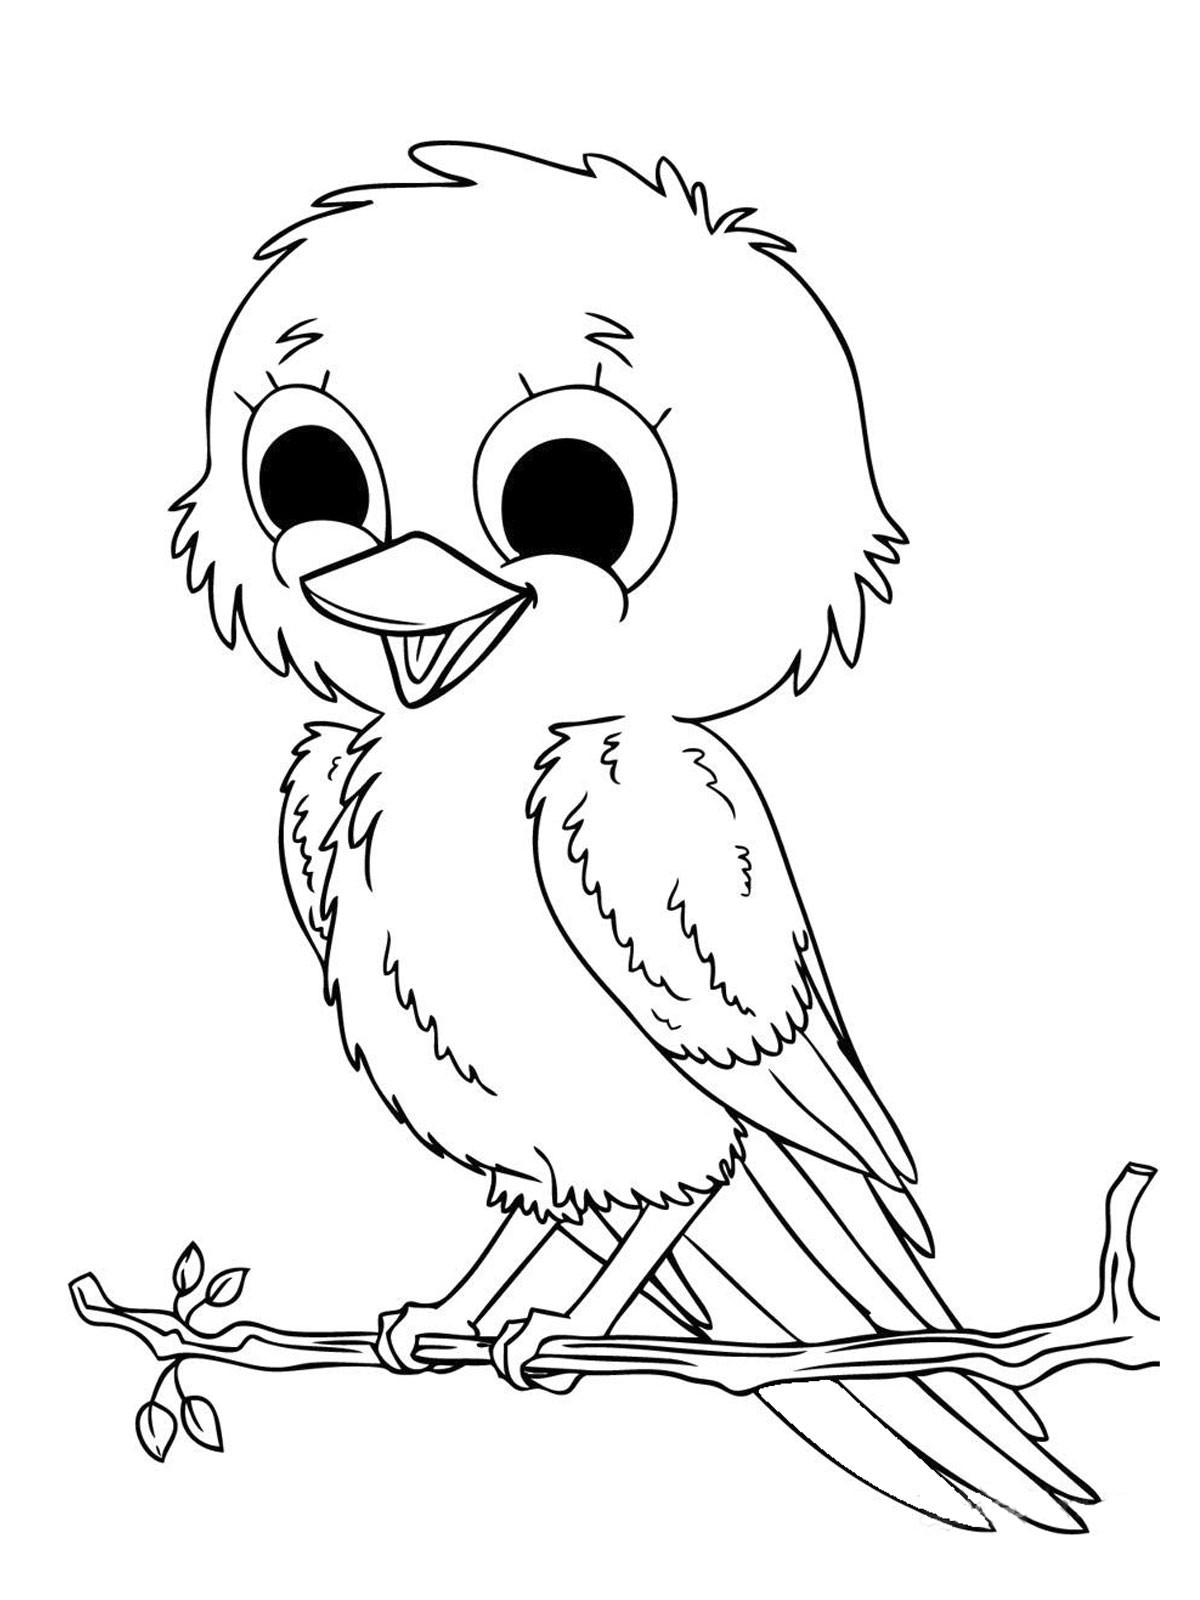 Best ideas about Animal Coloring Pages For Girls . Save or Pin Baby Animal Coloring Pages Now.